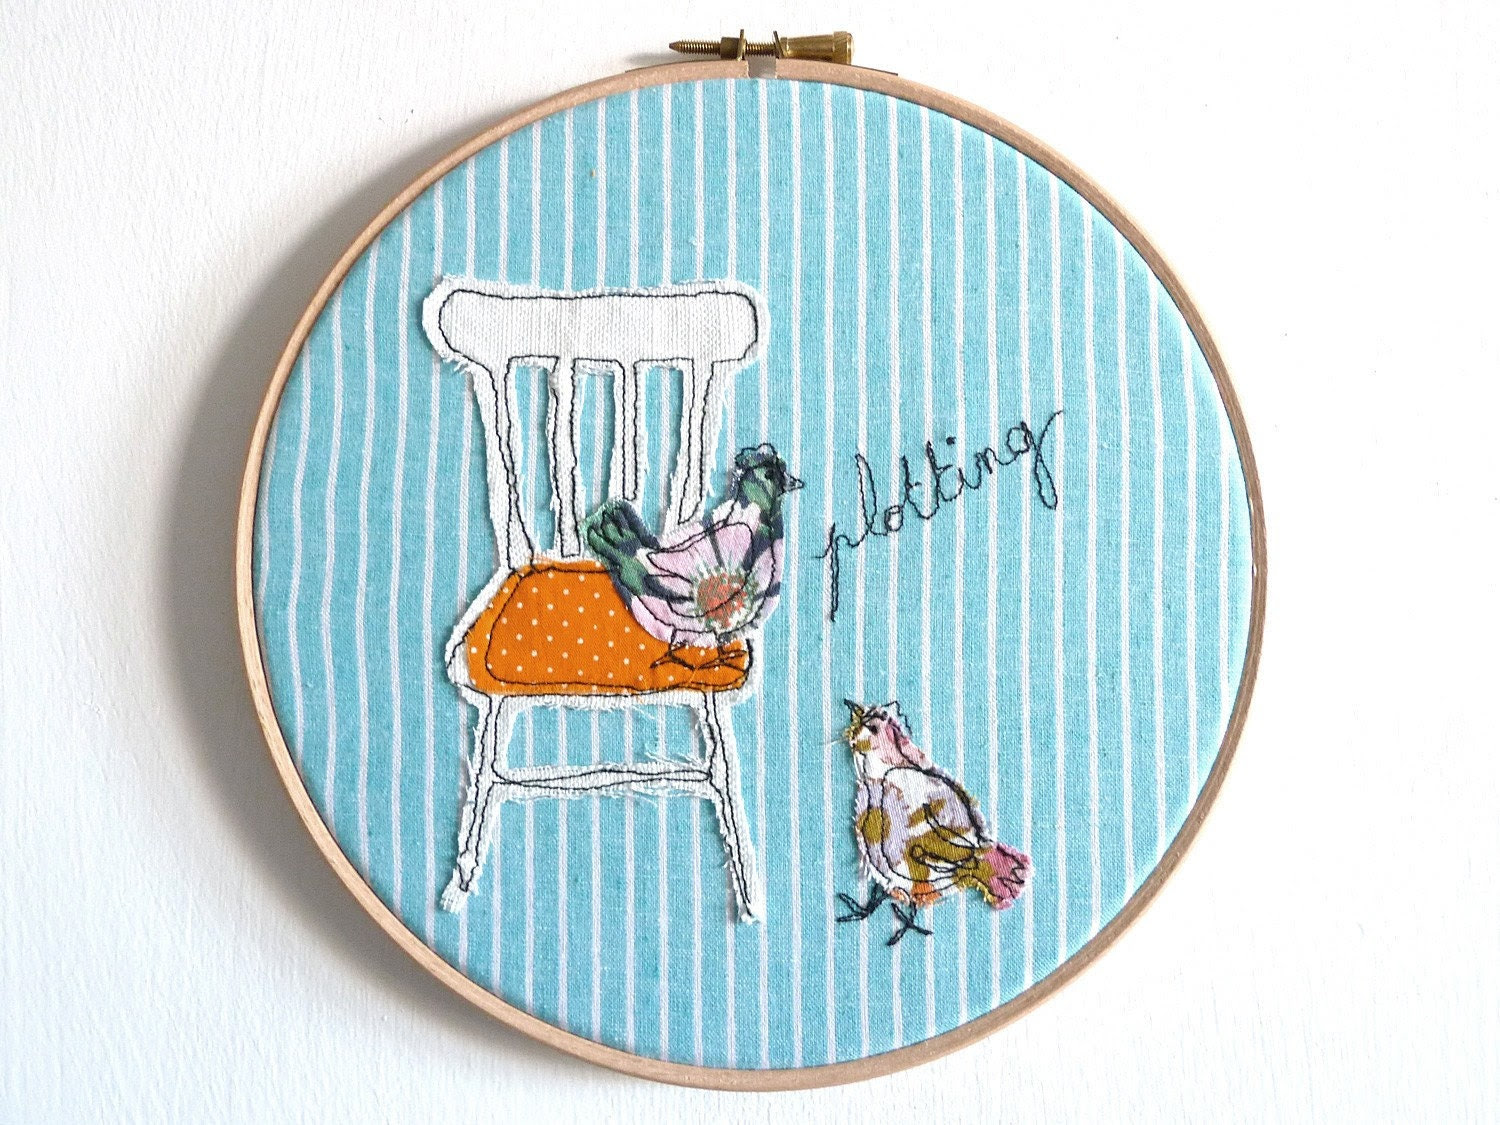 "Embroidery Hoop Art -'Plotting chickens' Whimsical Textile Illustration in turquoise & orange - 8"" hoop"